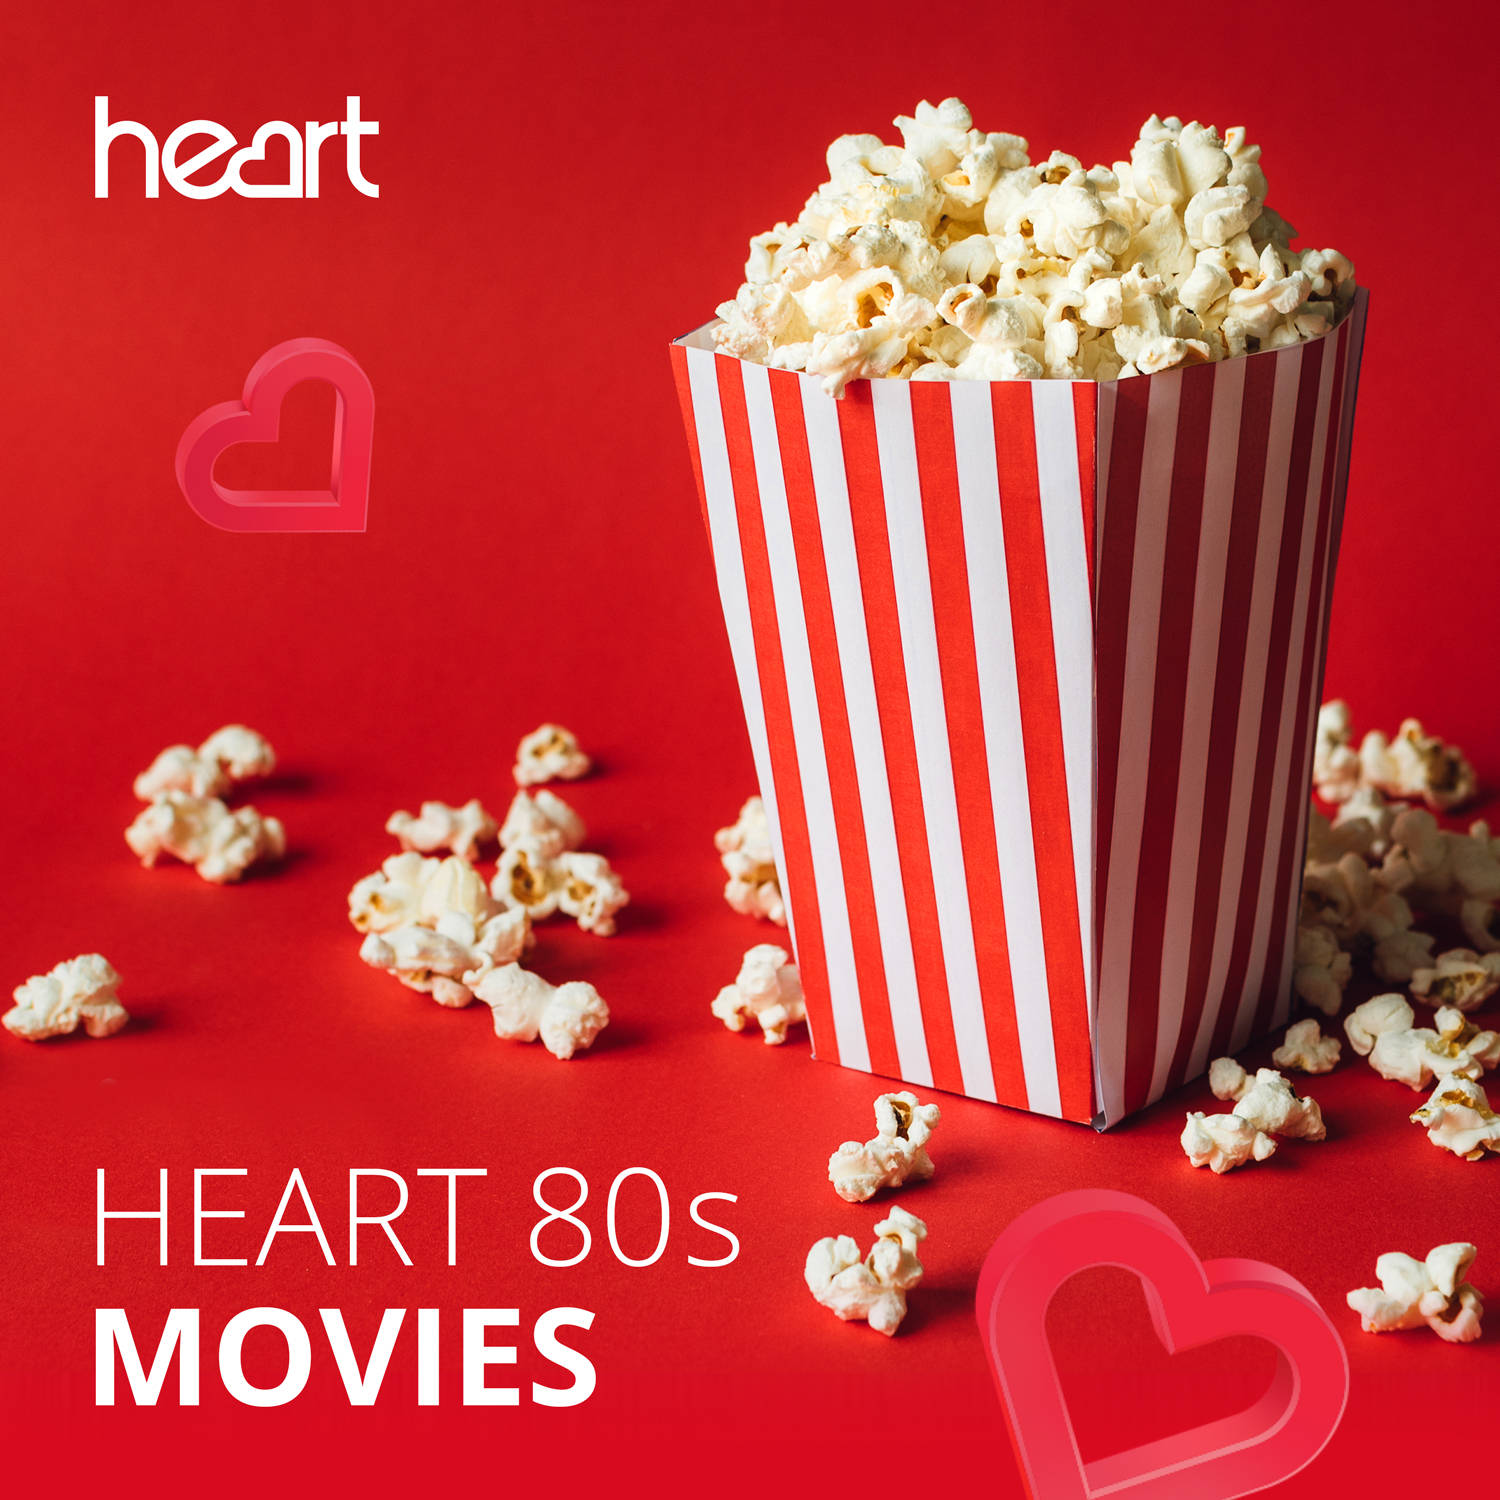 Heart 80s Movies image